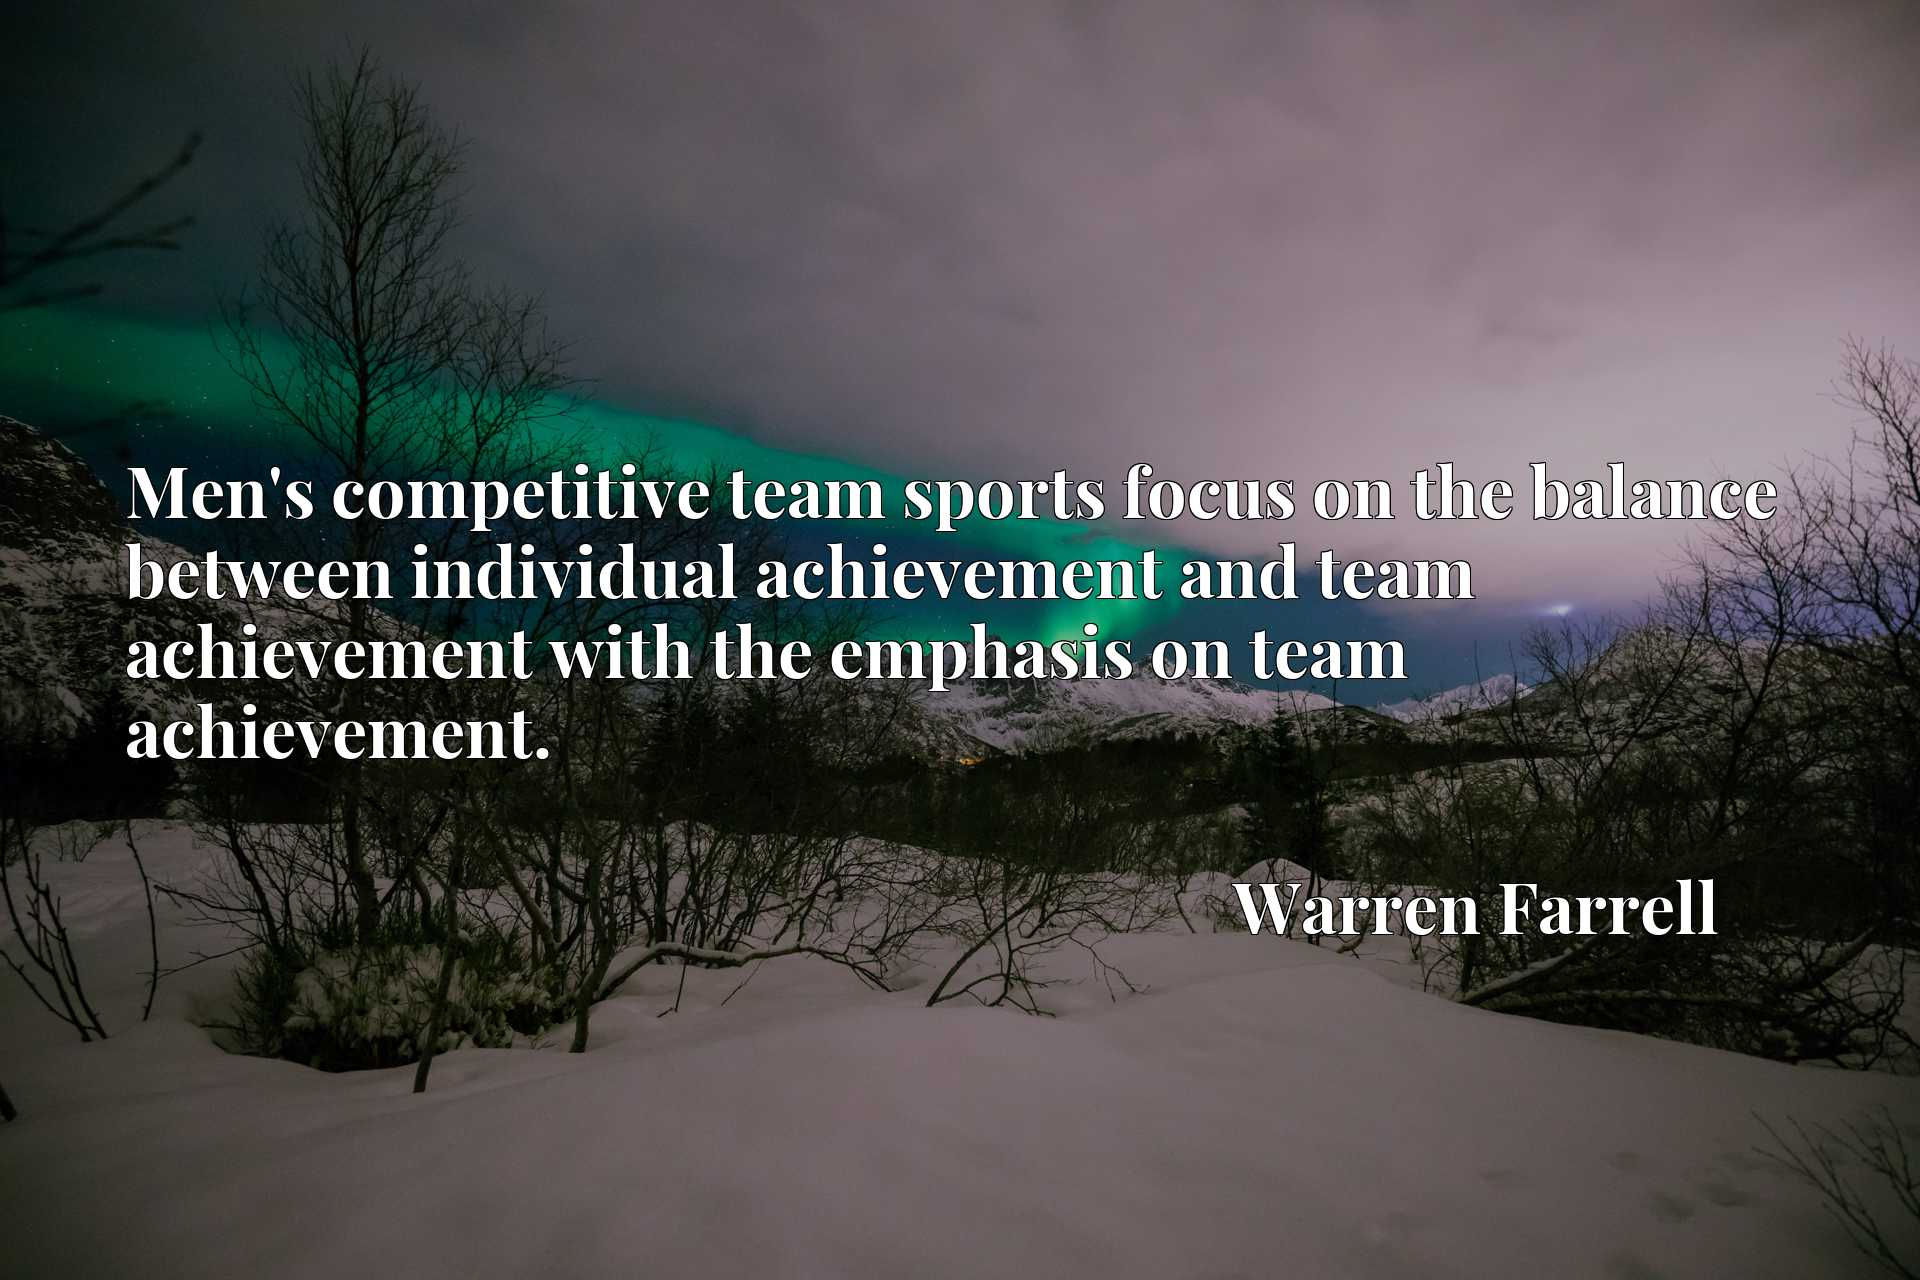 Men's competitive team sports focus on the balance between individual achievement and team achievement with the emphasis on team achievement.